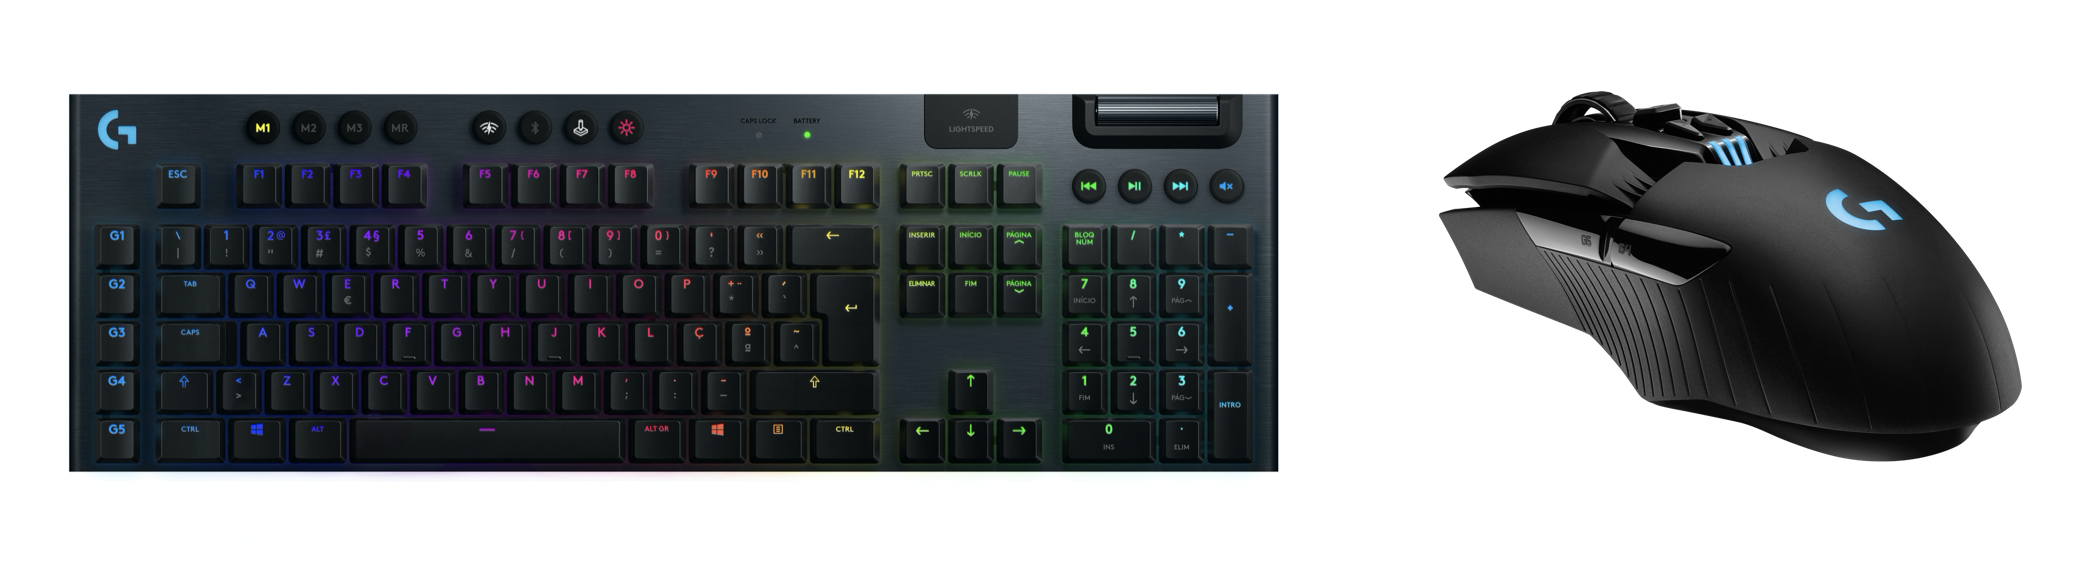 logitech keyboard Mums Love Tech: Gift Ideas For Mothers Day